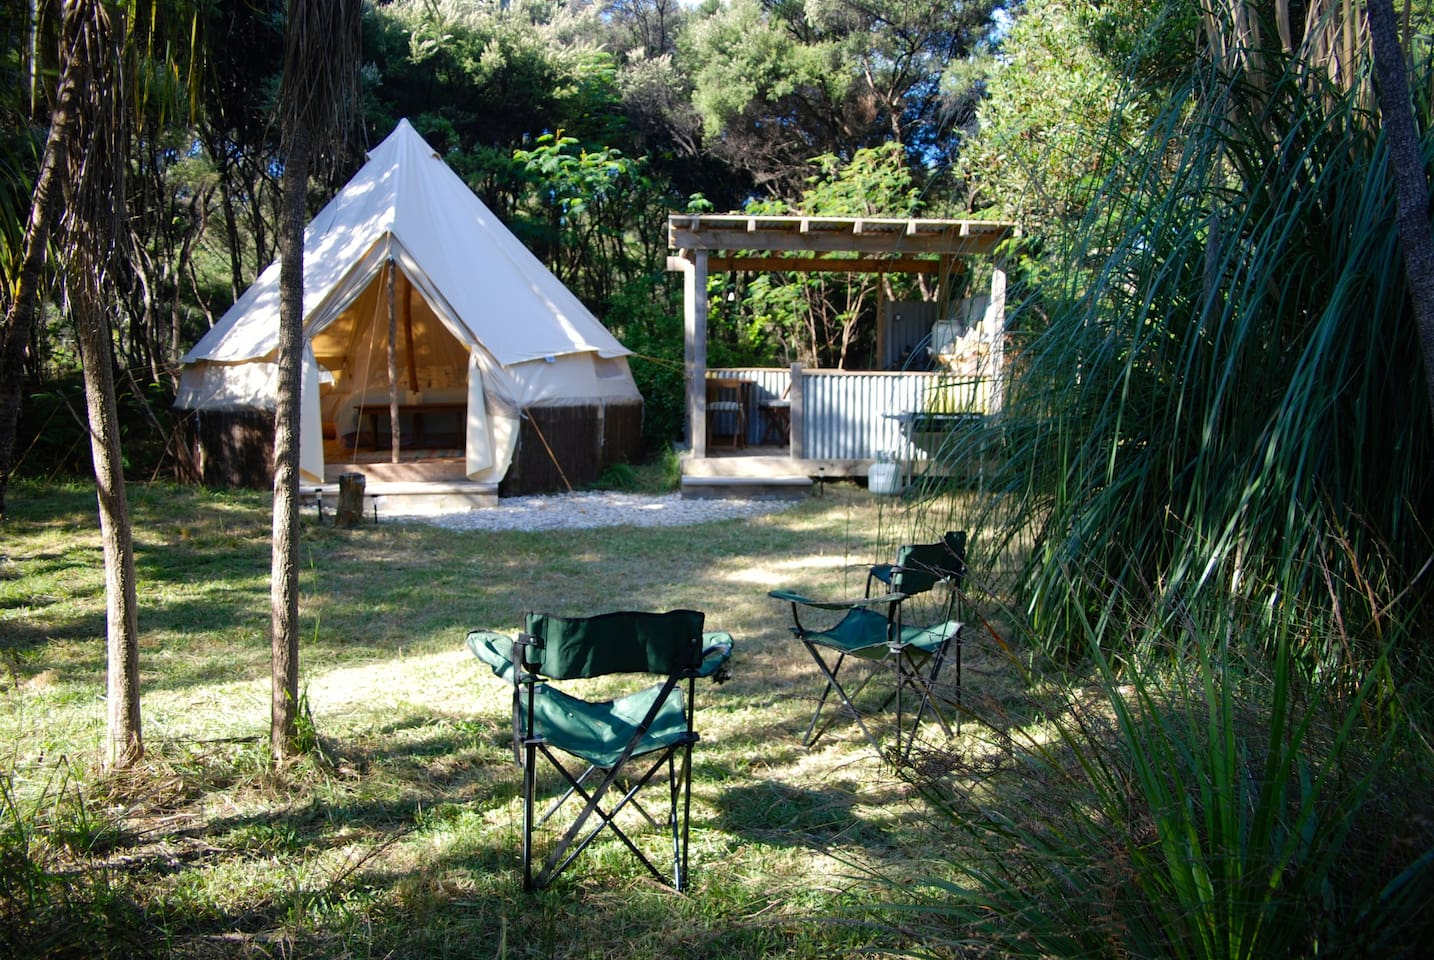 Your tent and private kitchen set in your own little clearing in the bush